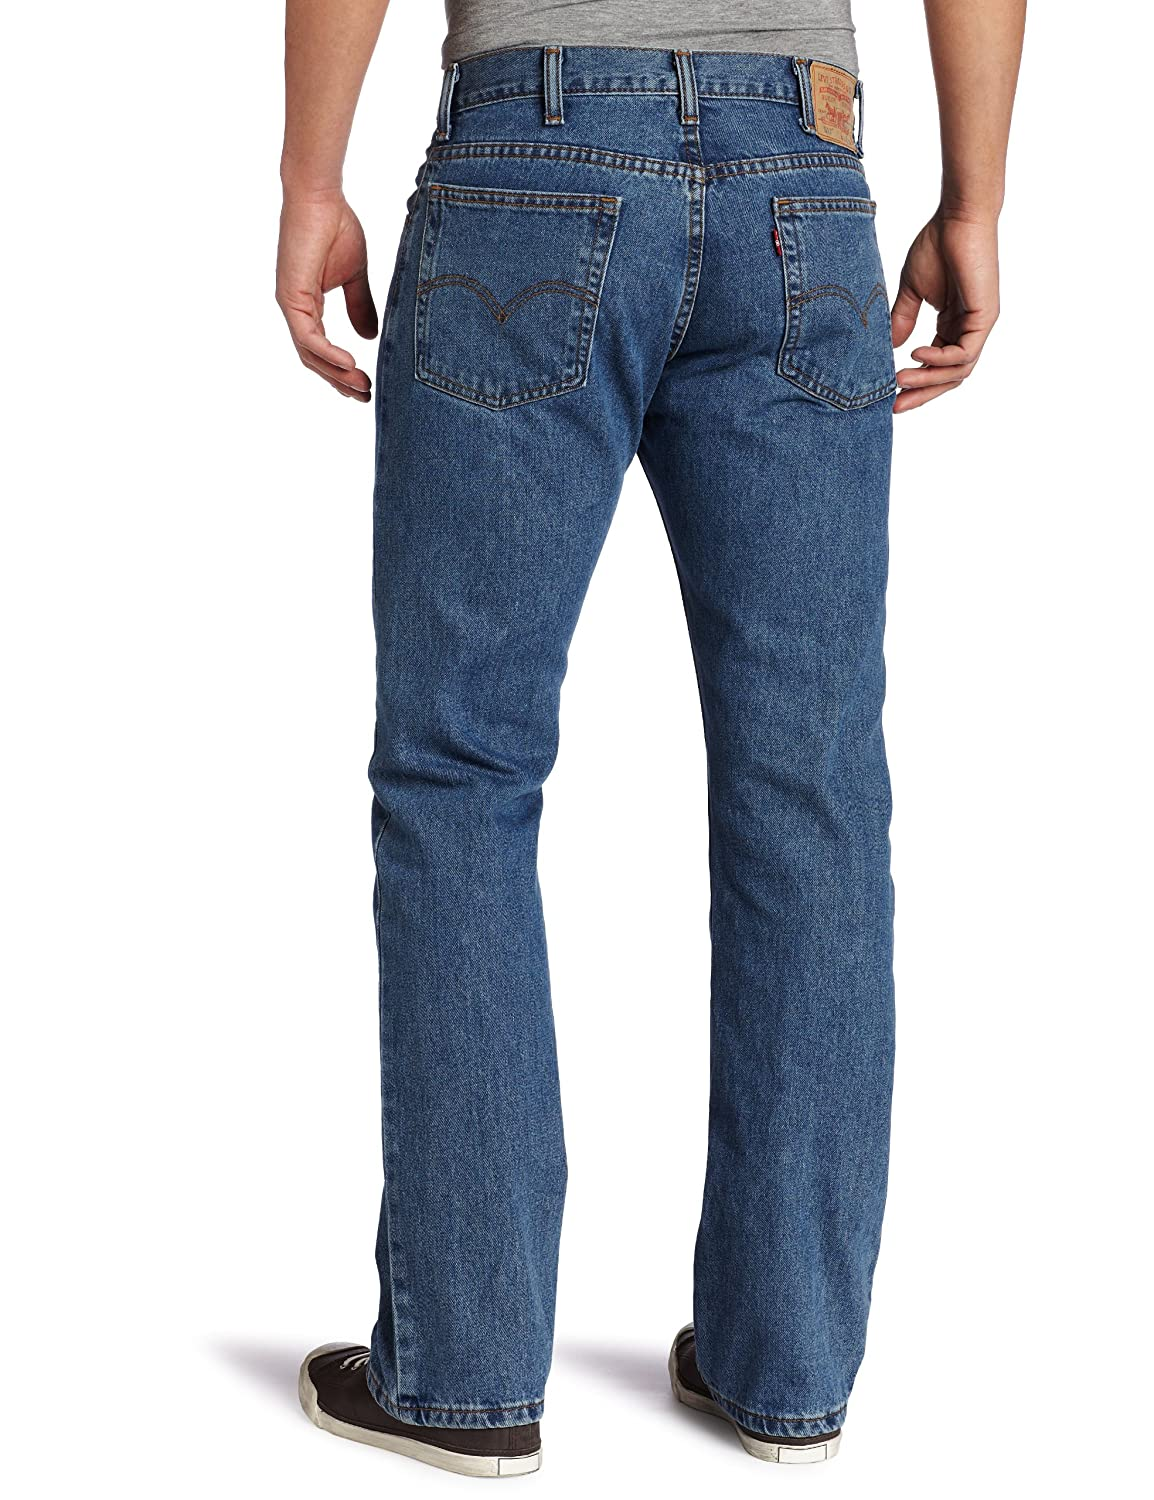 6abcf902 Levi's Men's 517 Bootcut Jean at Amazon Men's Clothing store: